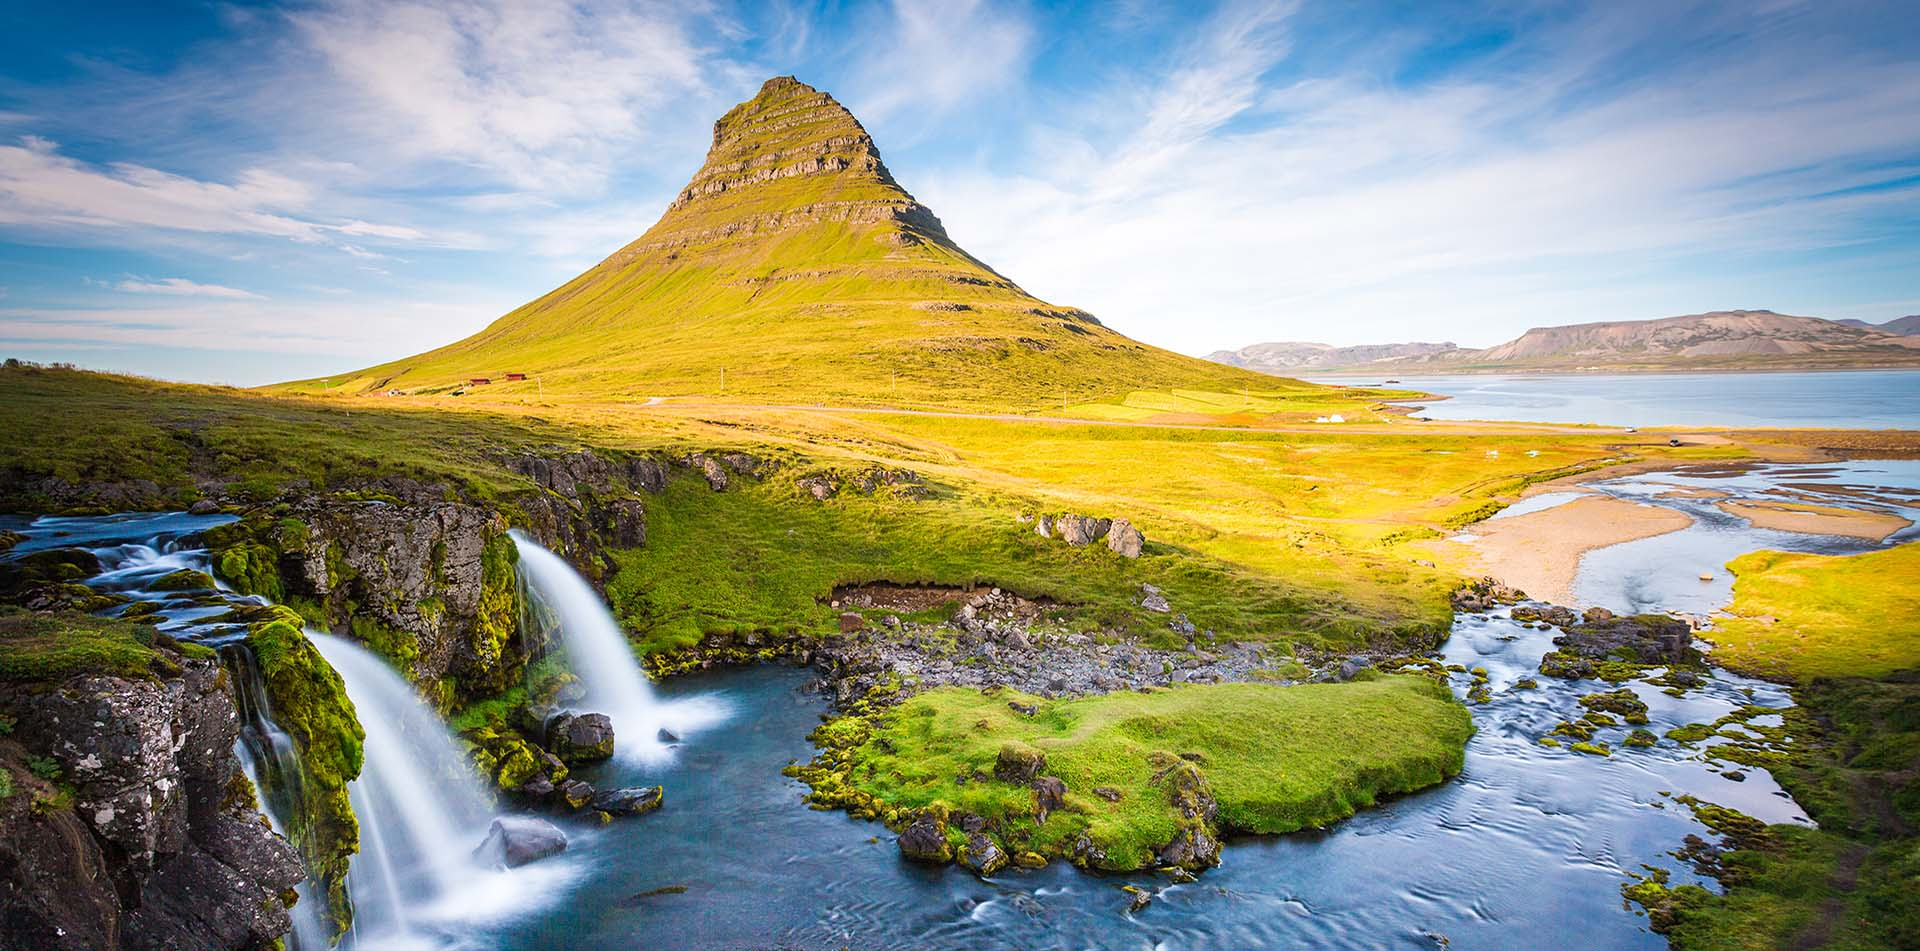 Europe Iceland Snaefellsnesnes Peninsula waterfall with Kirkjufell Mountain in background - luxury vacation destinations